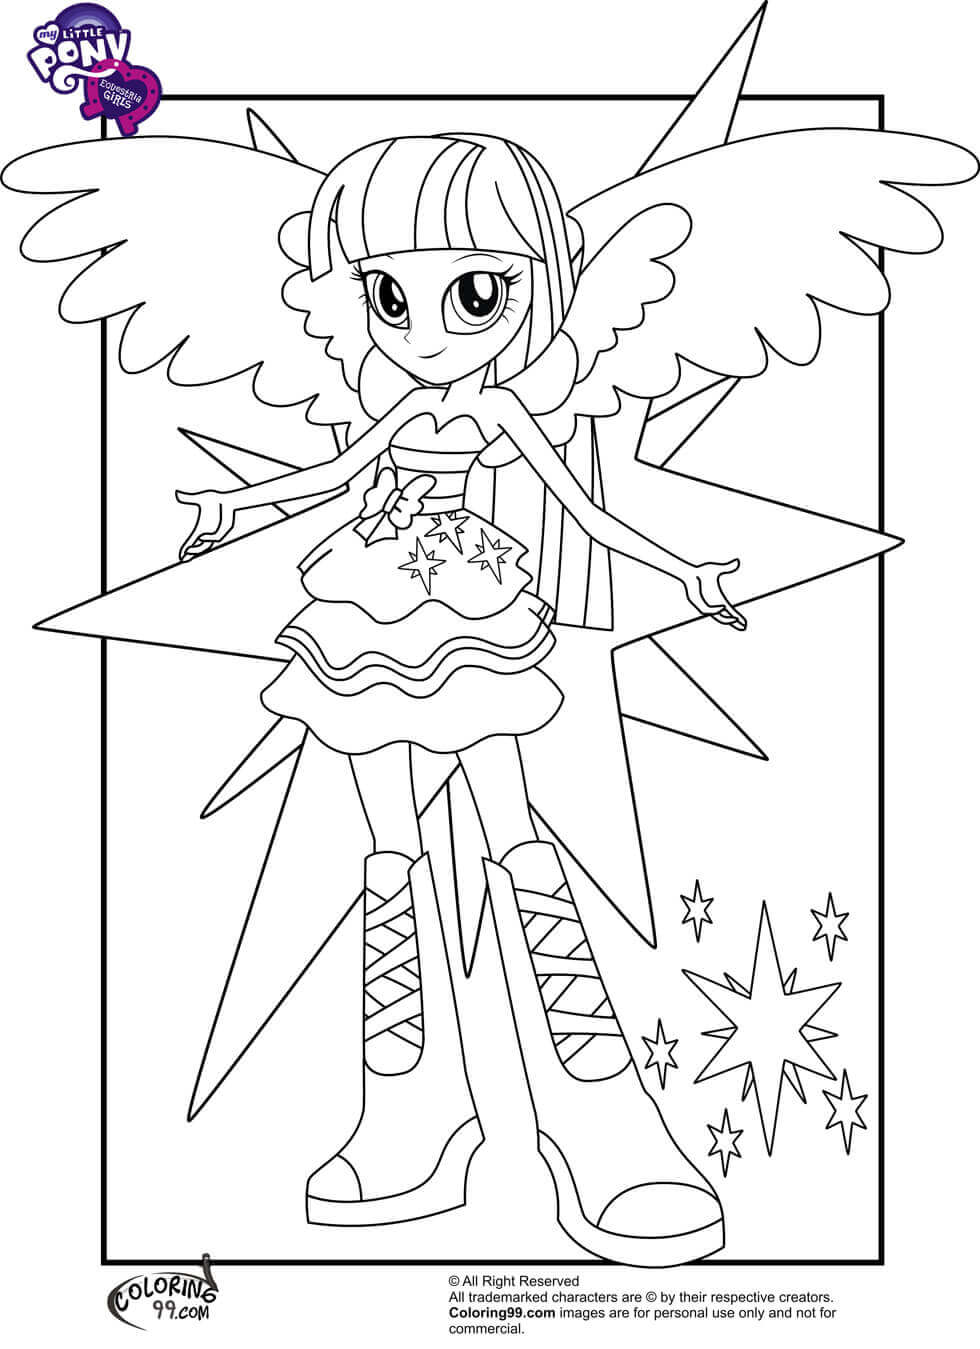 Equestria Girls Coloring Pages 15 Printable My Little Pony Equestria Girls Coloring Pages